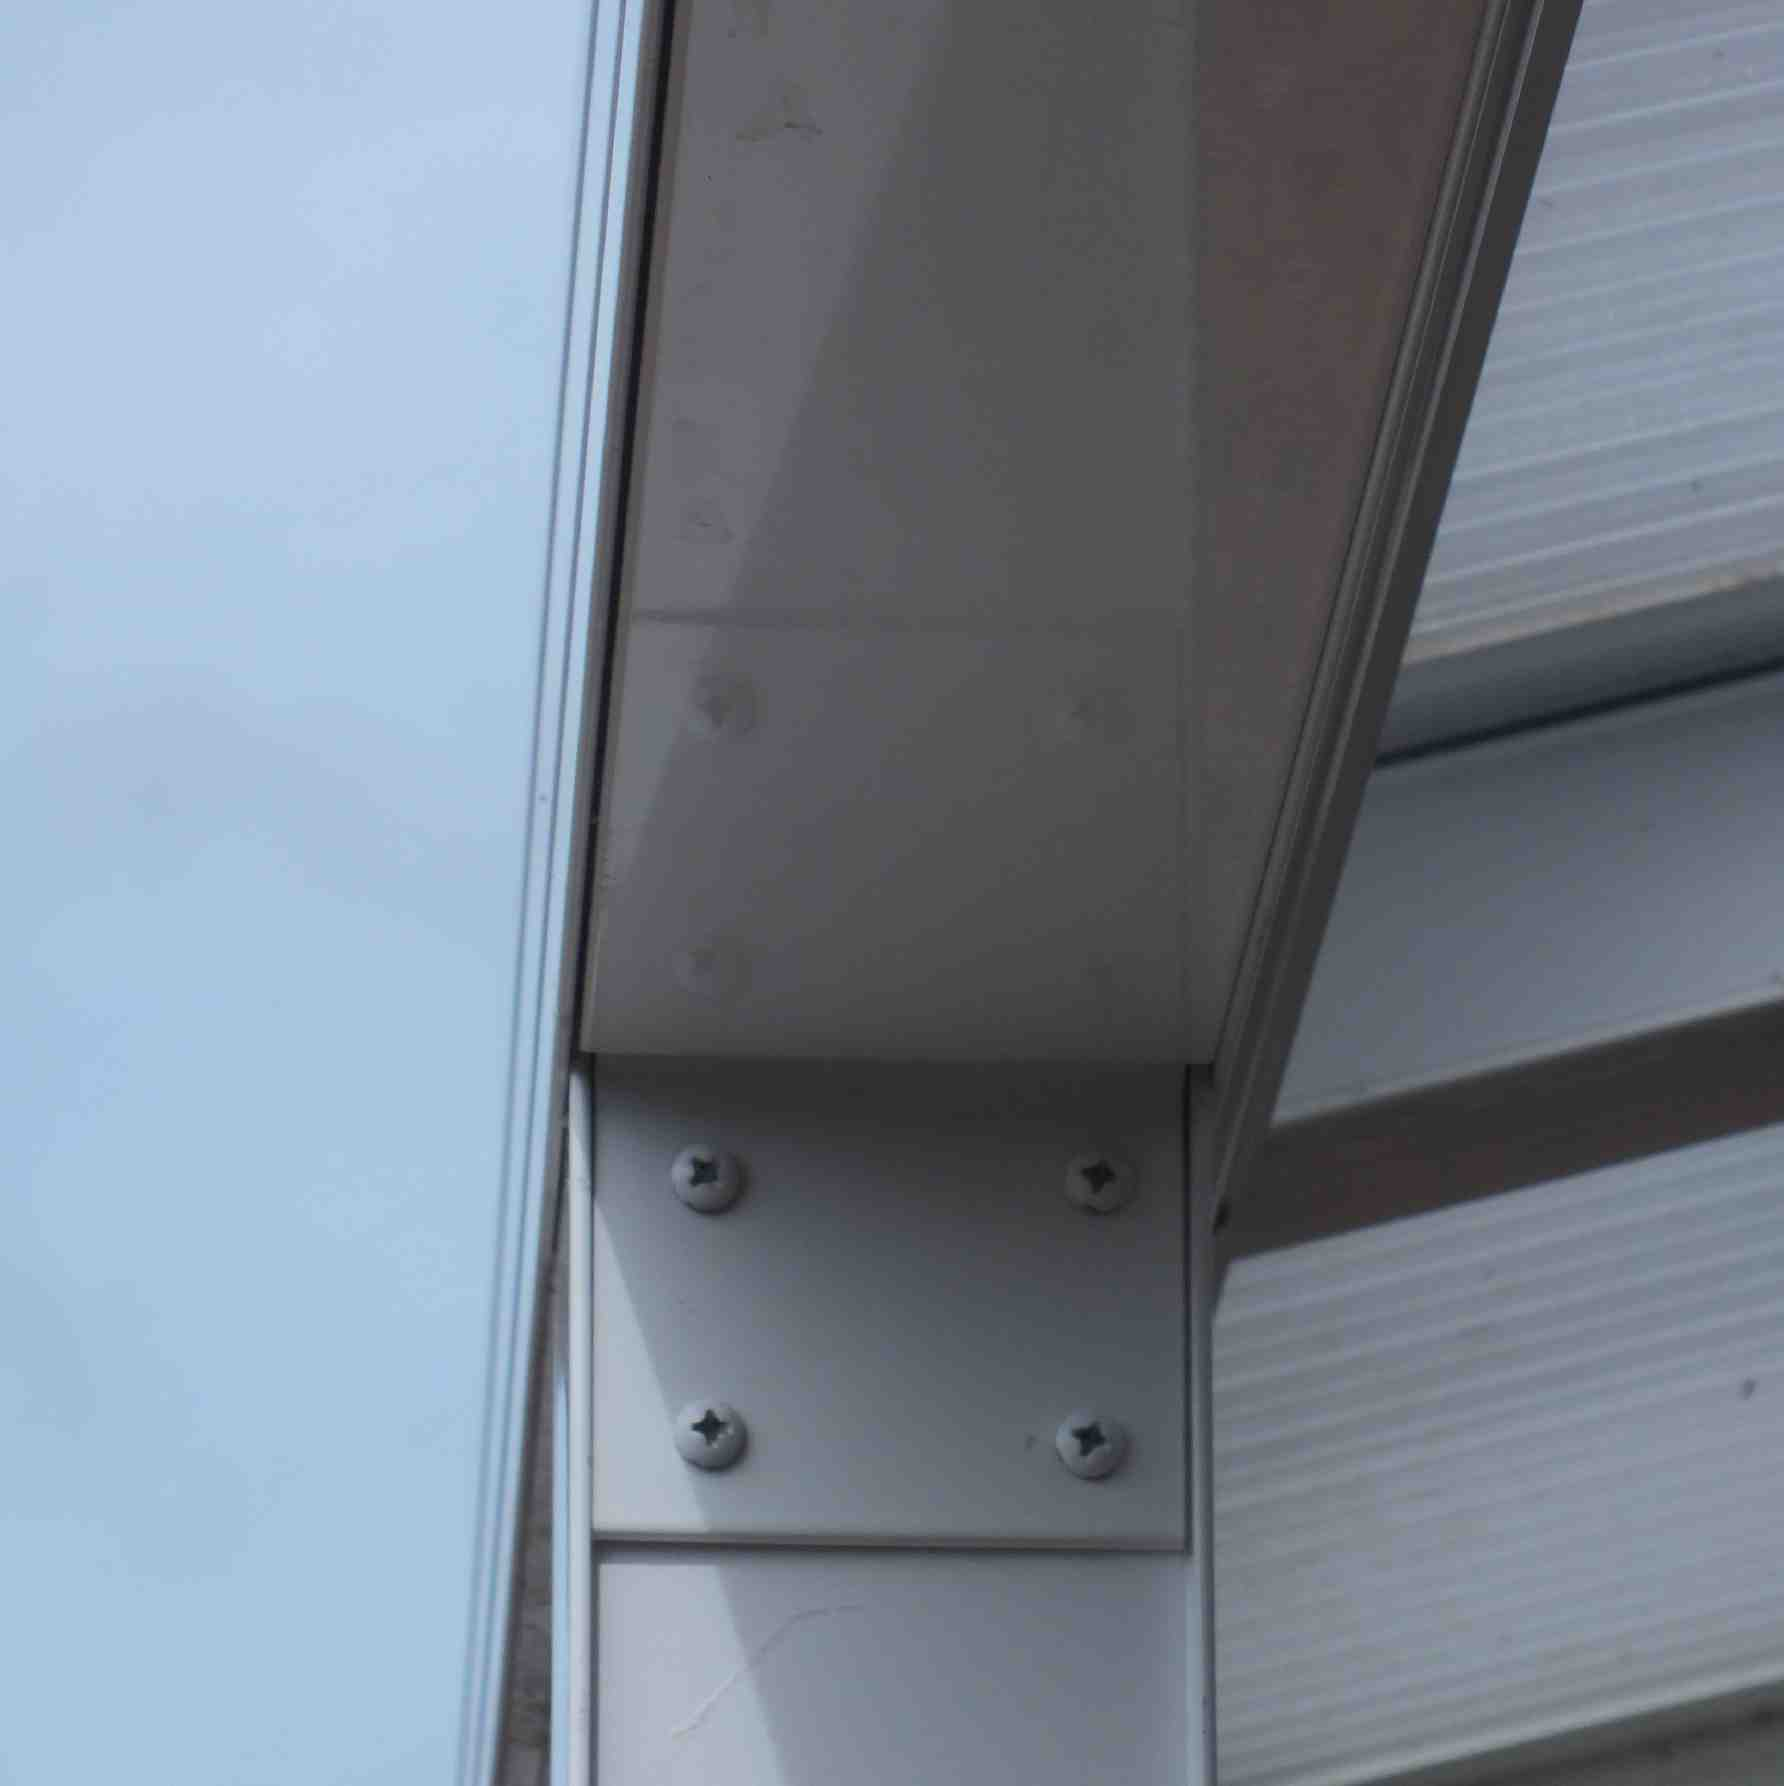 Affordable Omega Verandah with 6mm Glass Clear Plate Polycarbonate Glazing - 9.1m (W) x 1.5m (P), (5) Supporting Posts